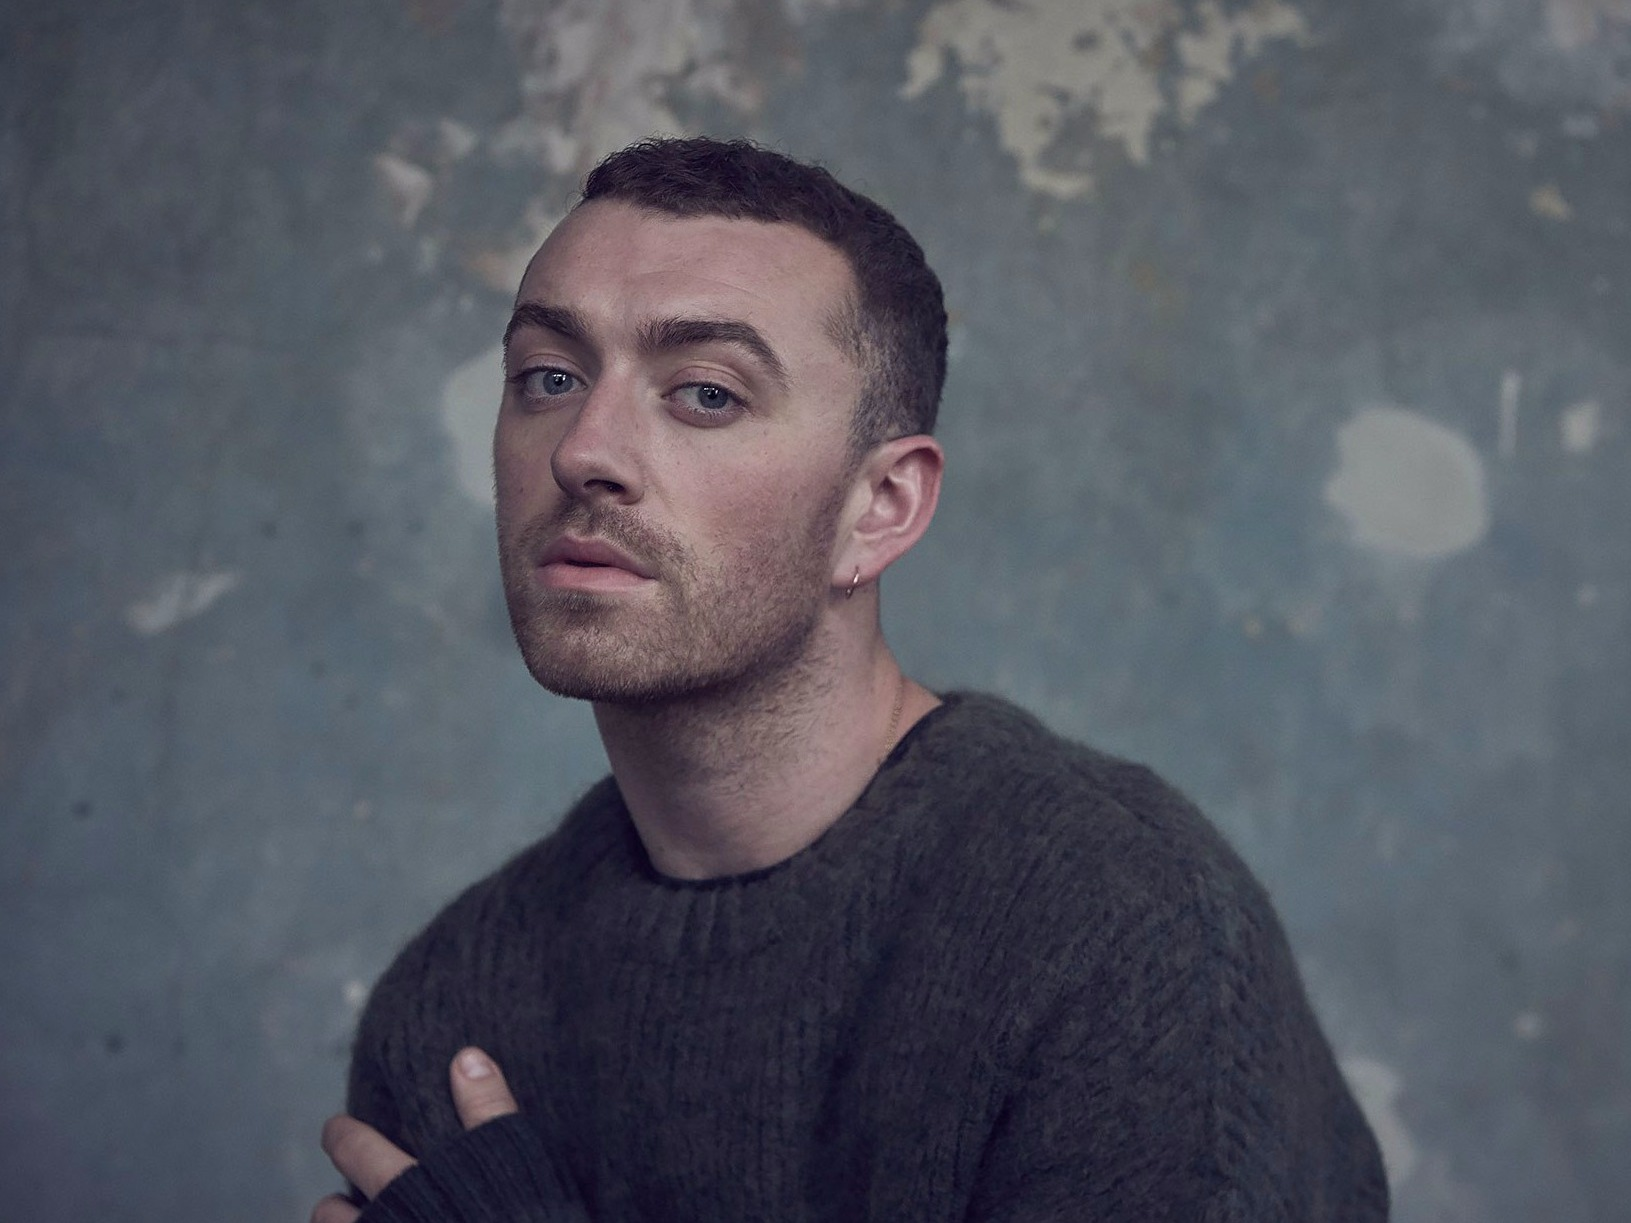 10 Artists To Listen To If You Love Sam Smith